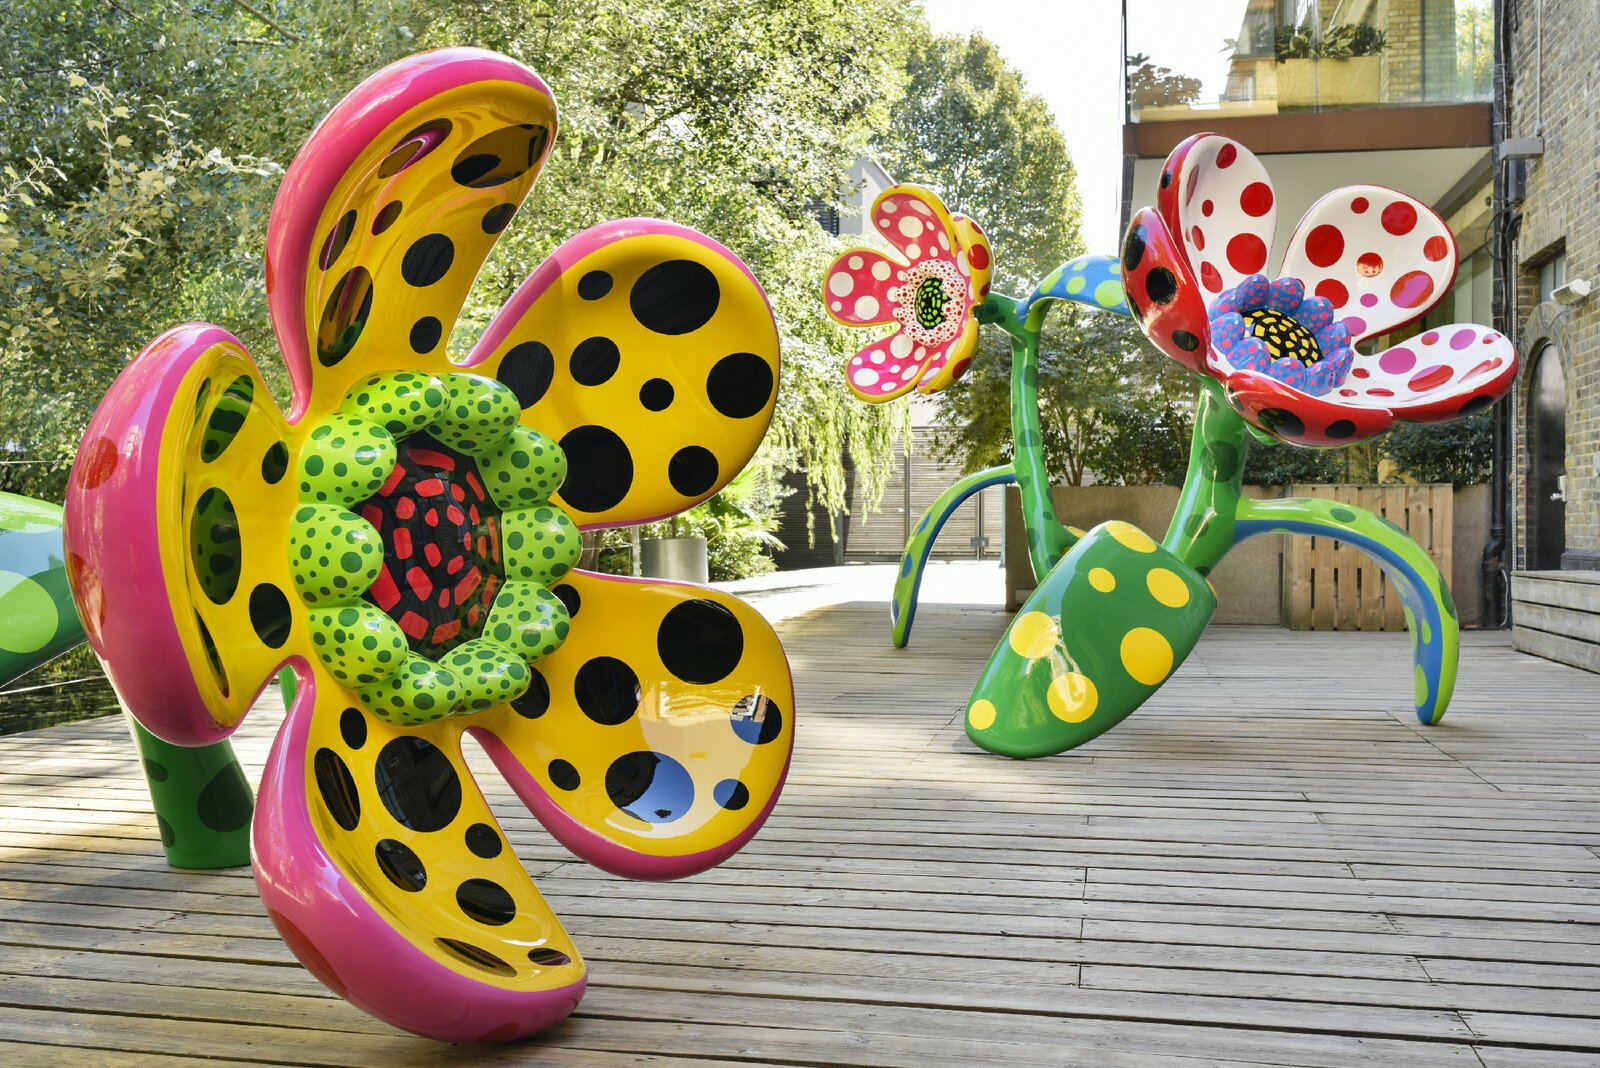 Yayoi Kusama escultura al aire libre de flores titulada Flowers that speak all about my heart given to the sky